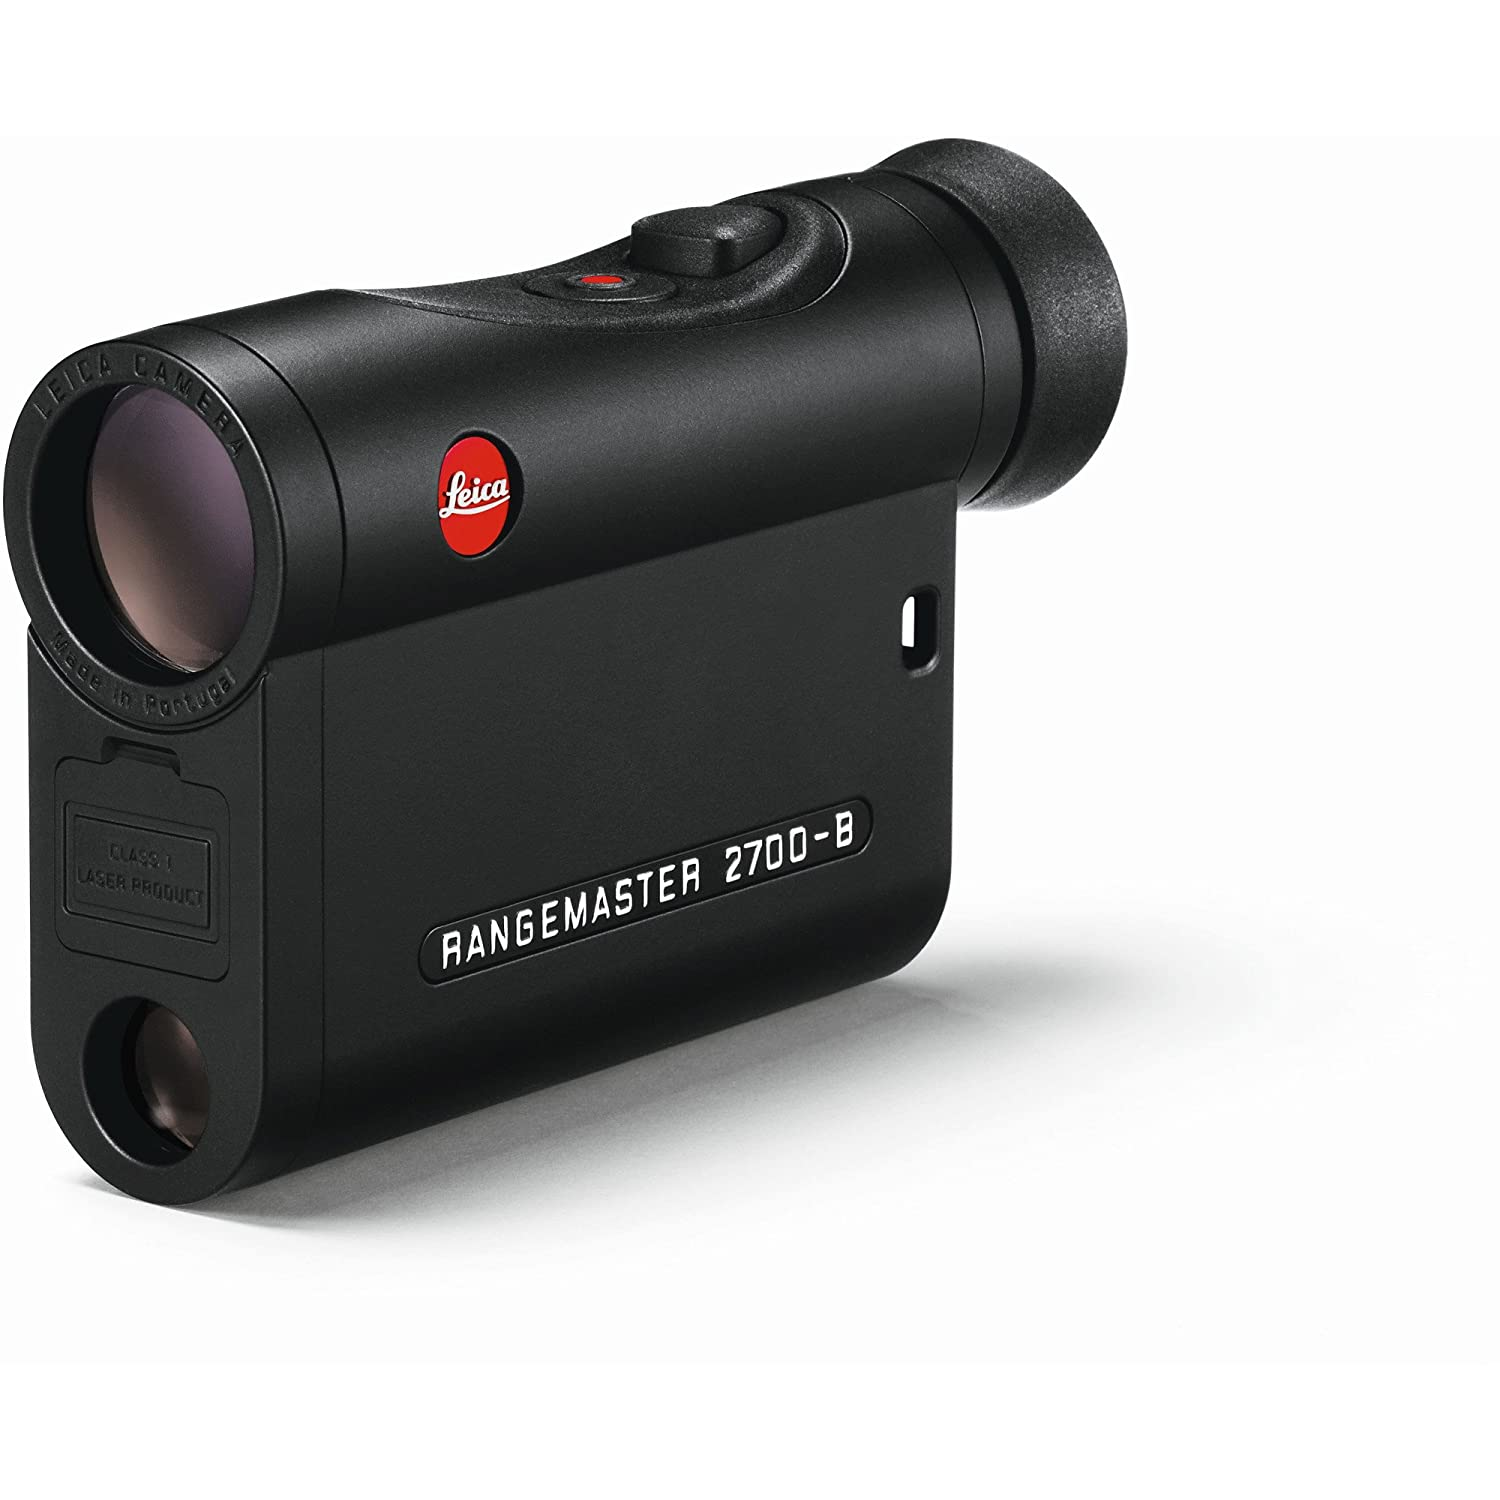 Amazon.com: Leica 7x24 Rangemaster CRF 2700-B Laser Rangefinder: Sports &  Outdoors